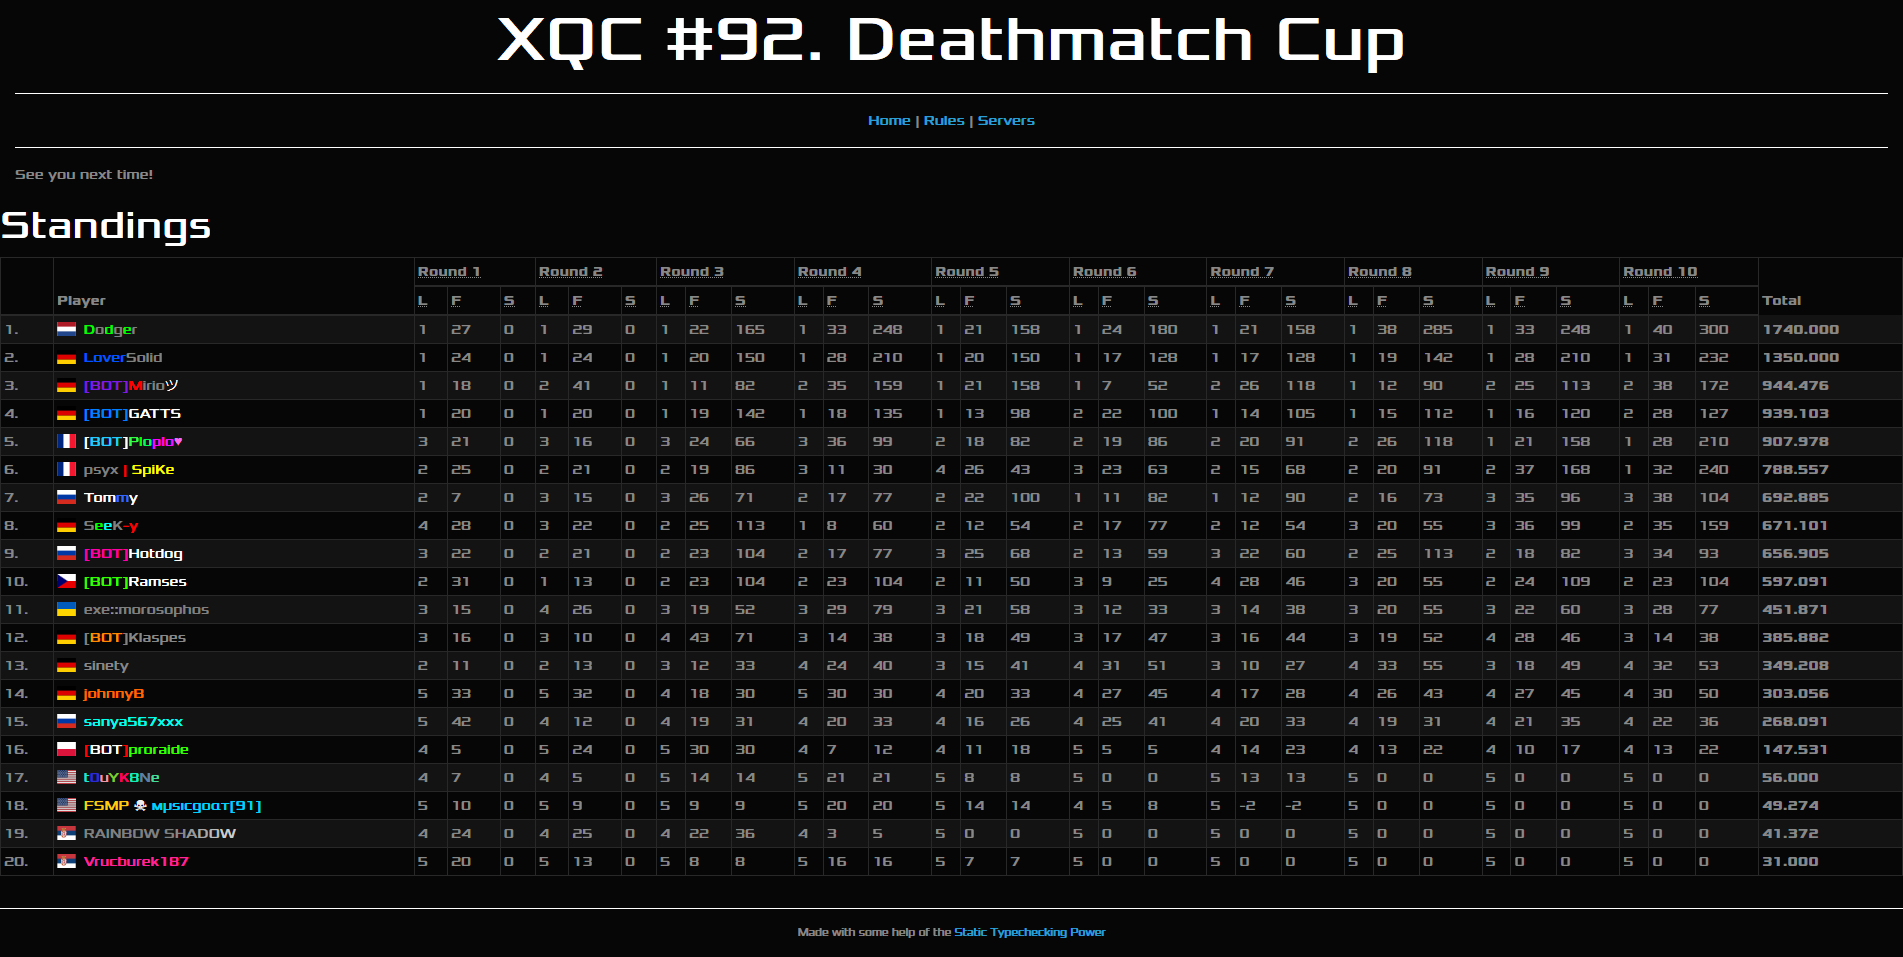 [Image: Screenshot_2019-09-20_XQC_92_Deathmatch_Cup.png]